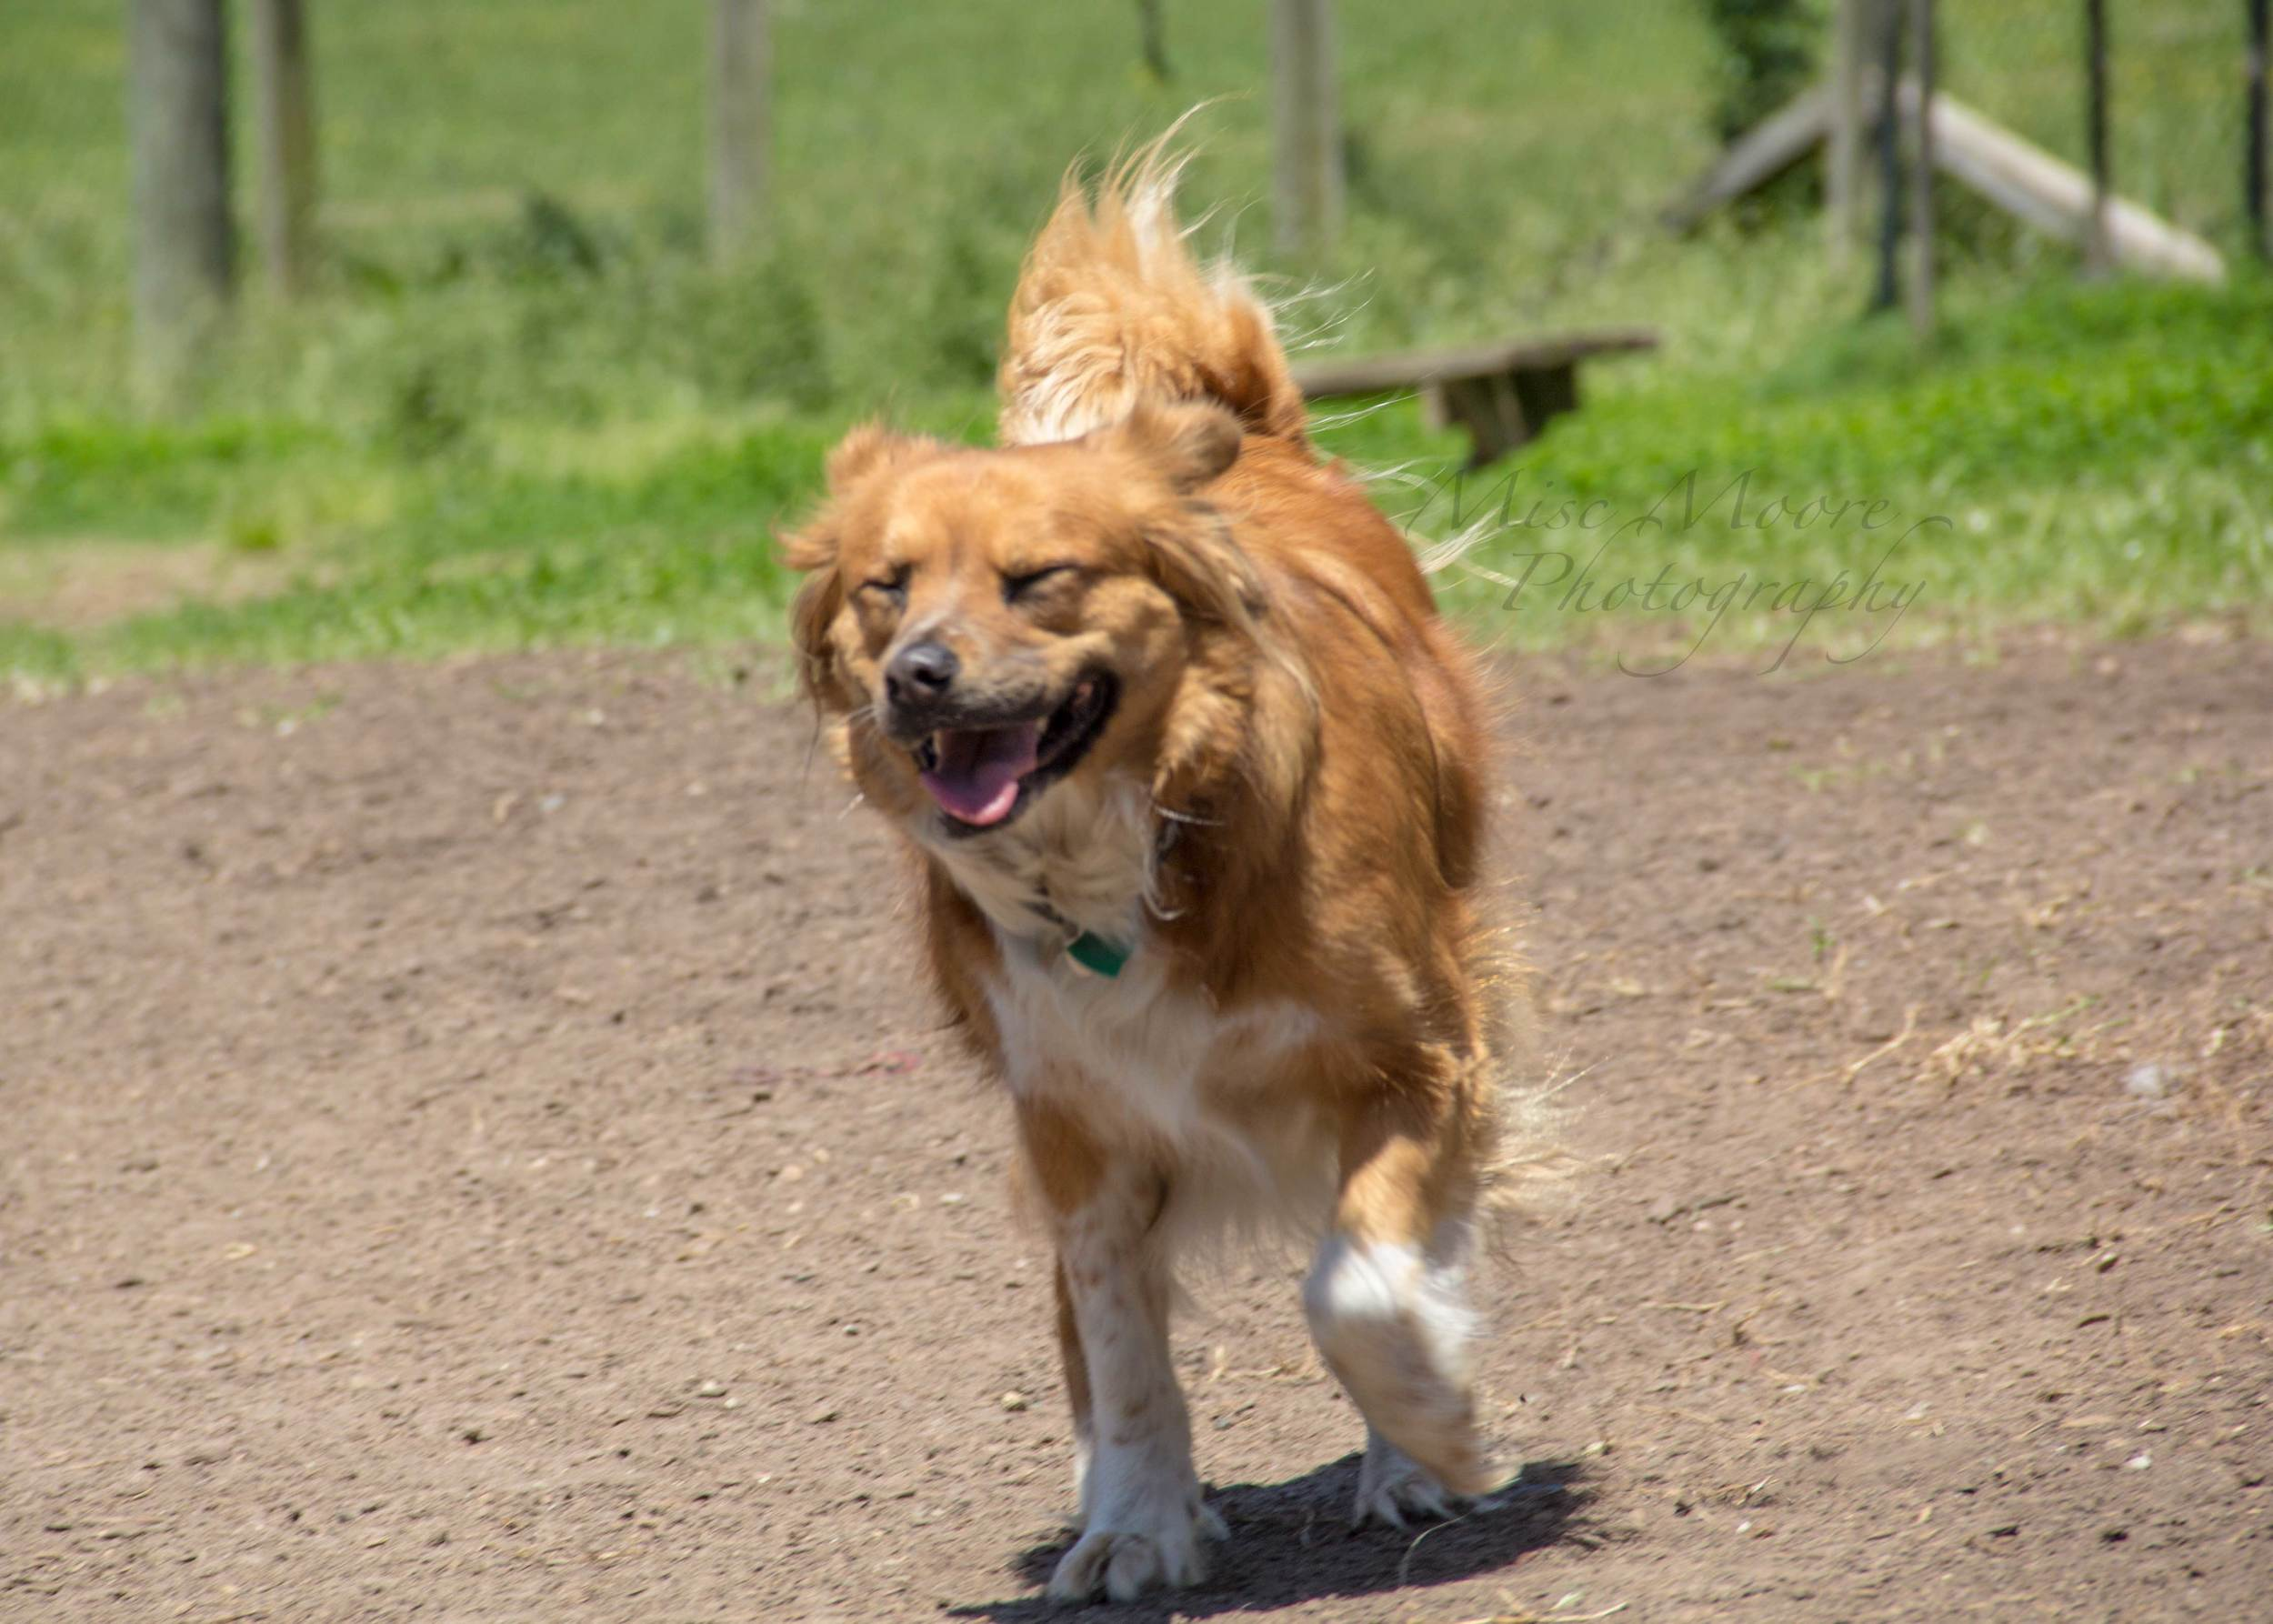 The best jokes are told at the dog park.